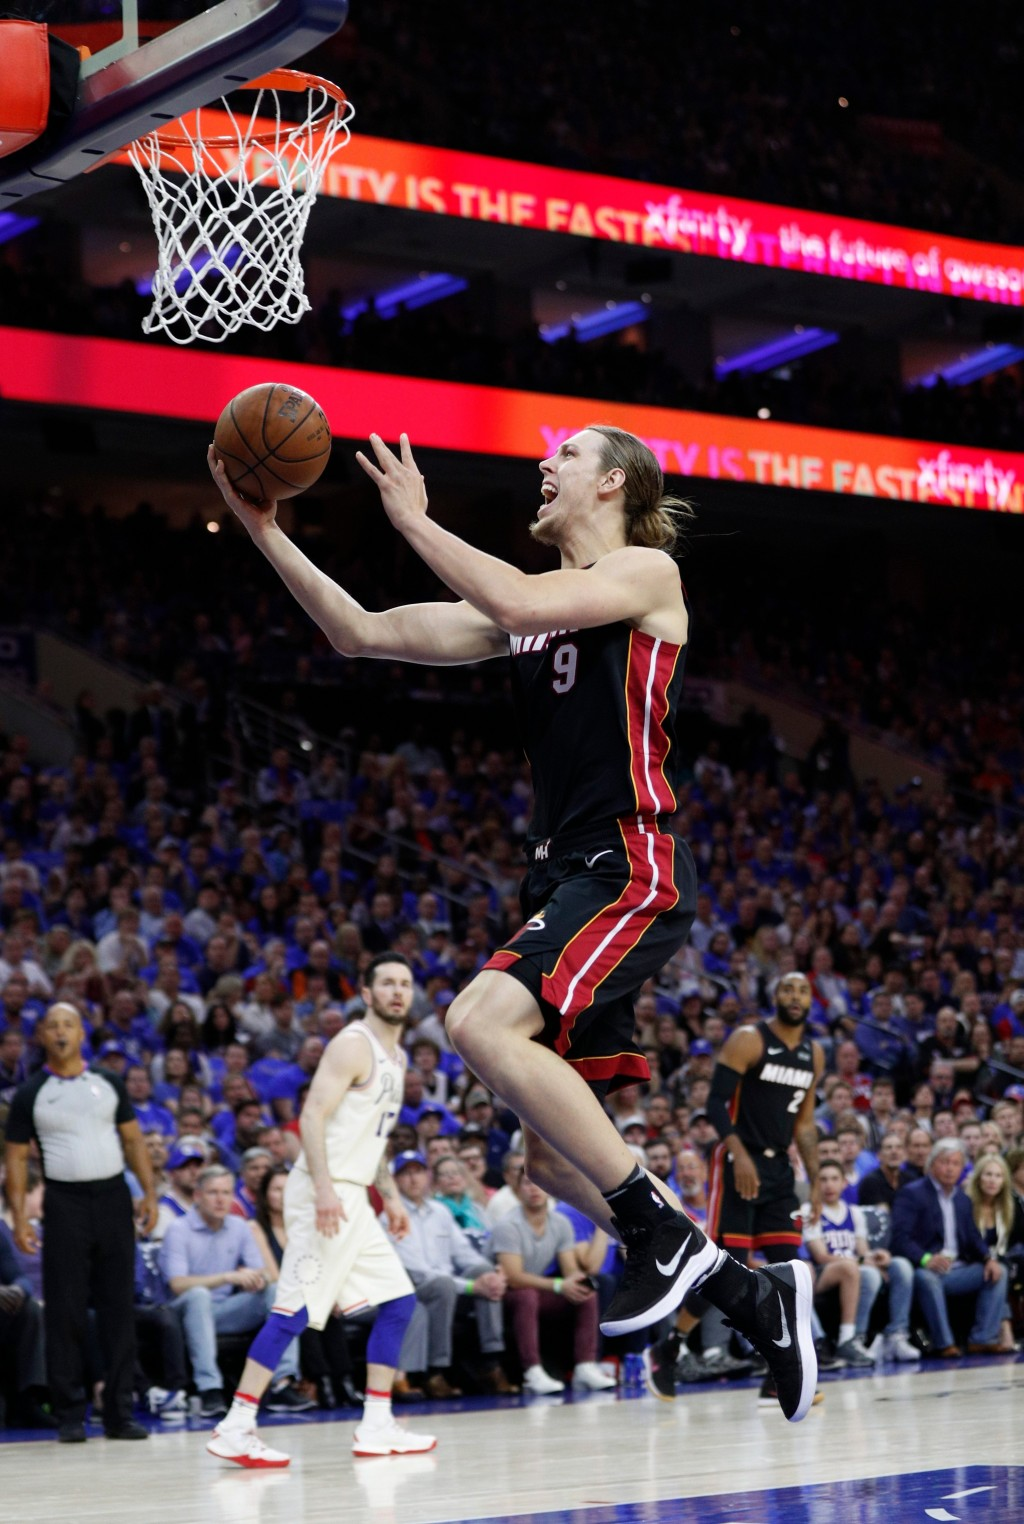 Miami Heat's Kelly Olynyk goes up for the shot during the first half in Game 1 of a first-round NBA basketball playoff series against the Philadelphia